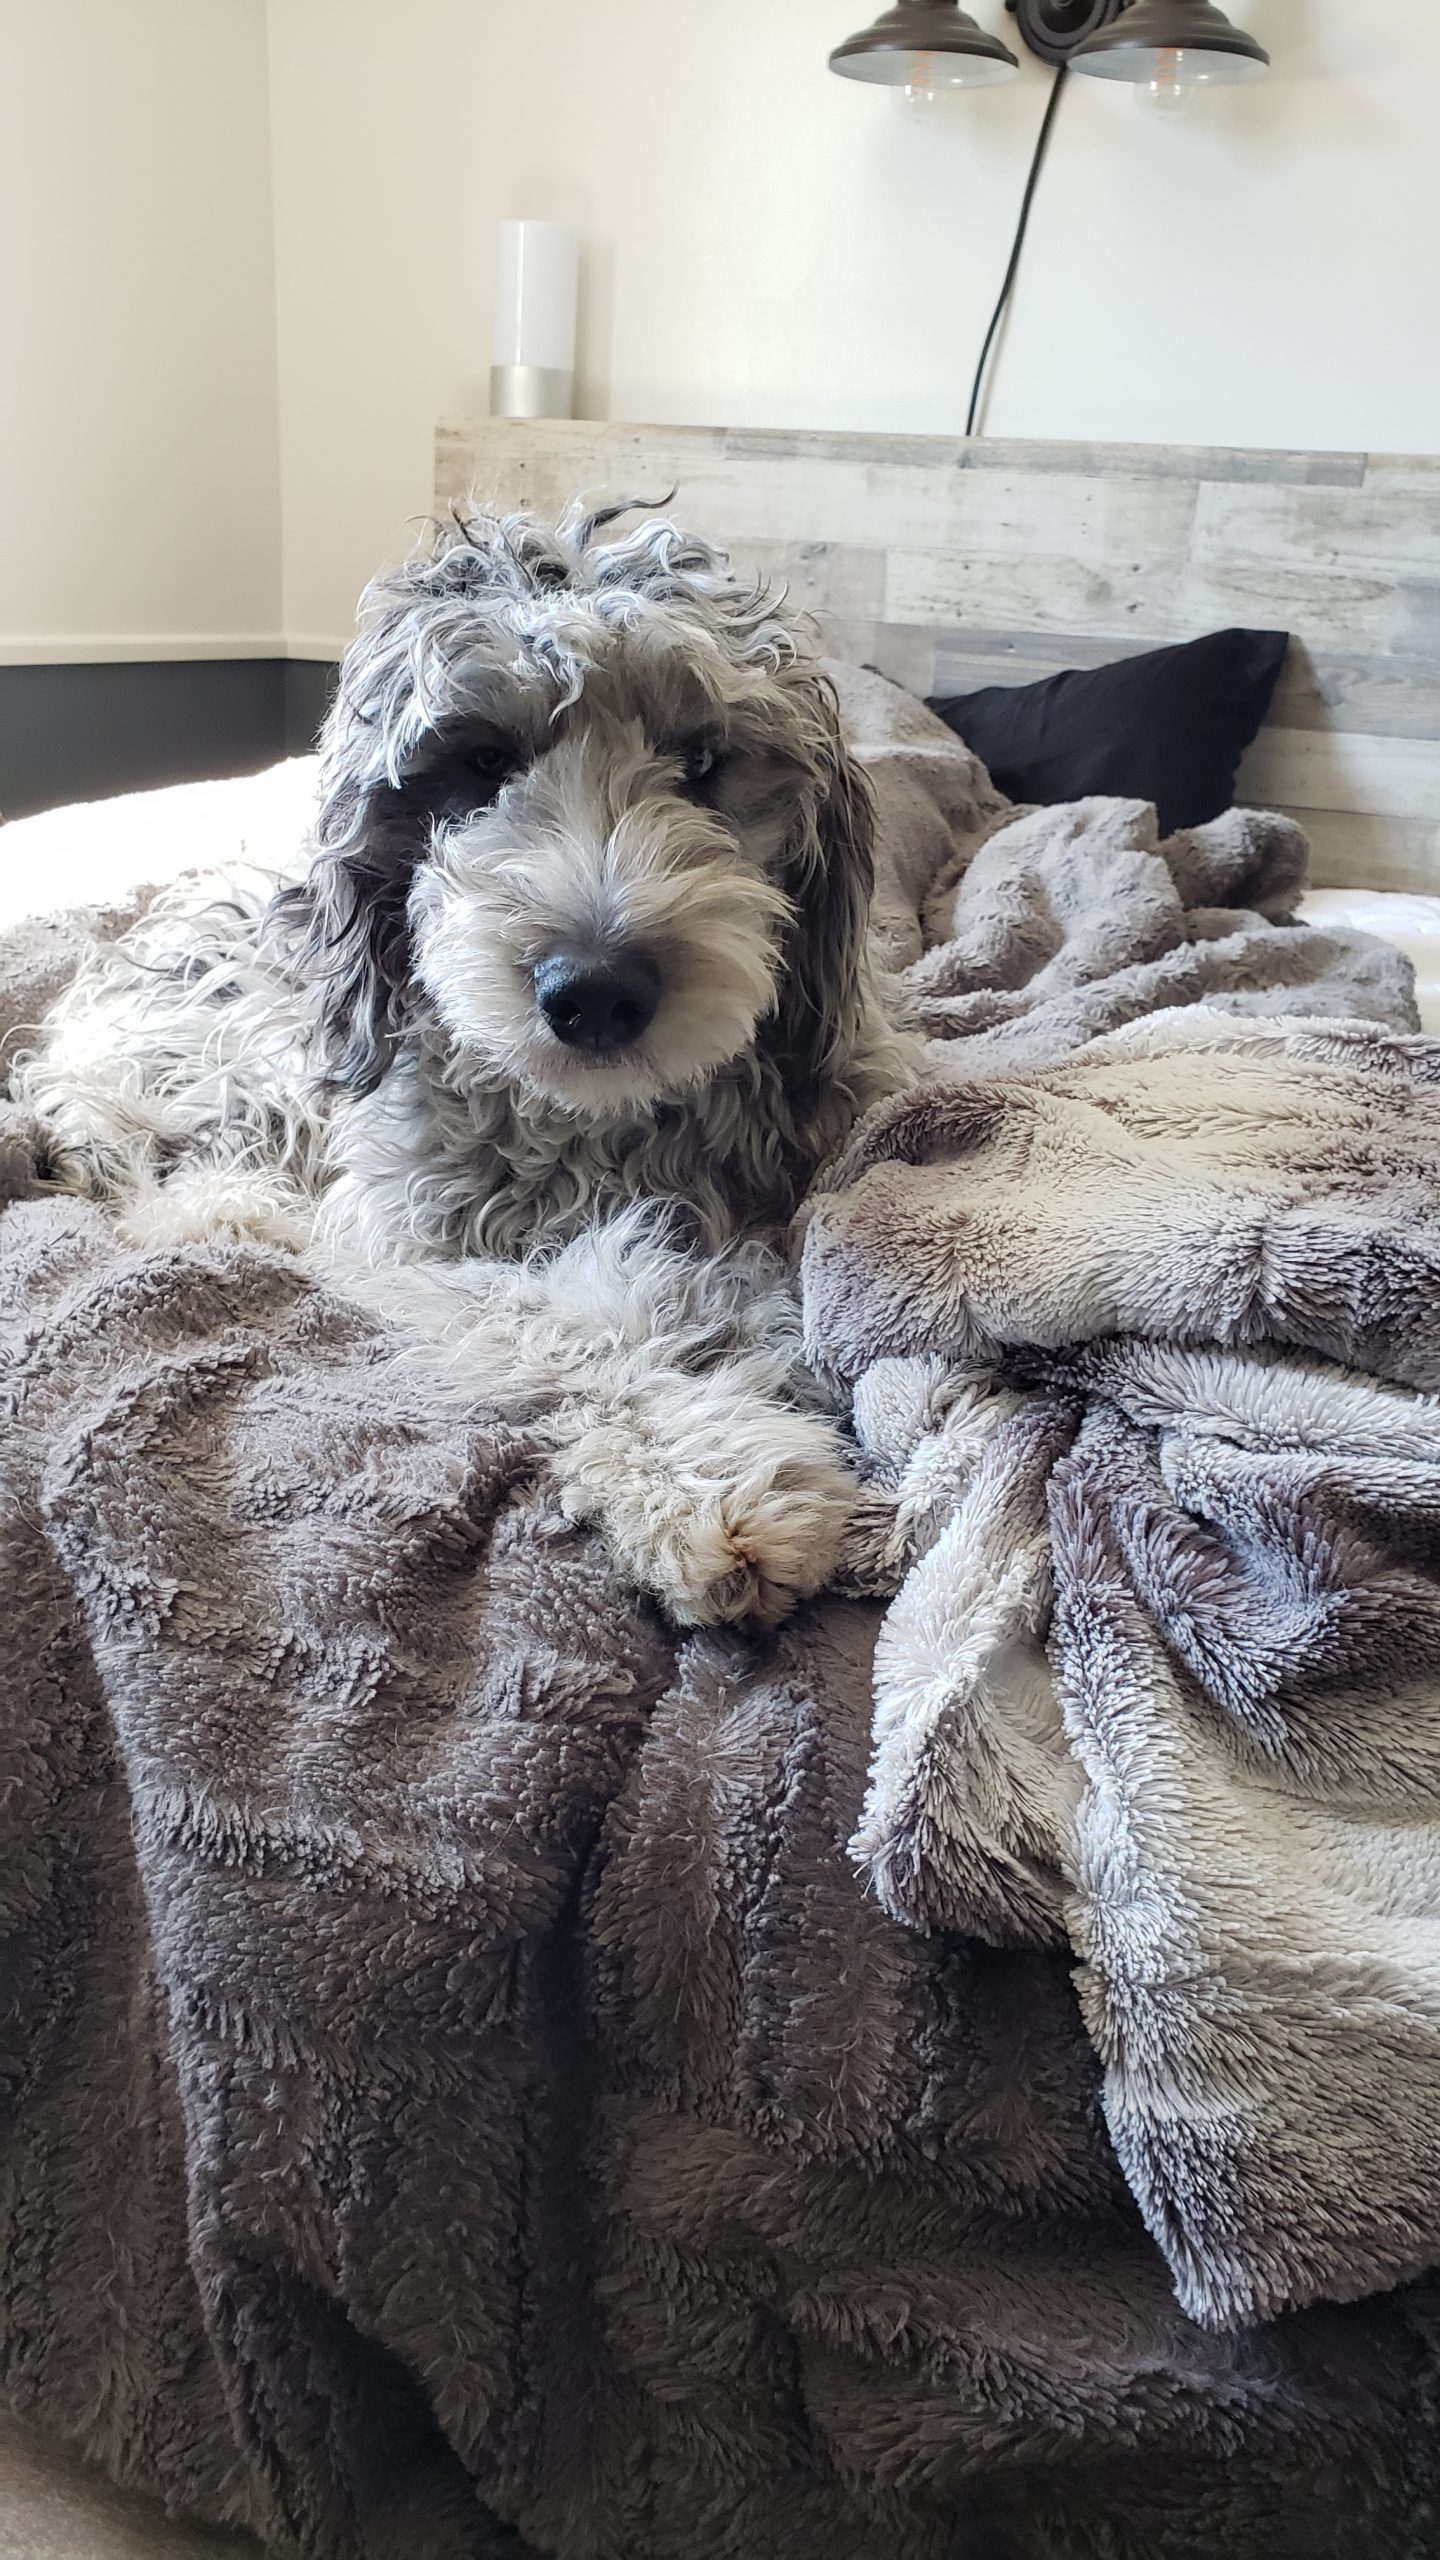 A blue merle Bordoodle for sale and laying on a bed with a grey blanket.